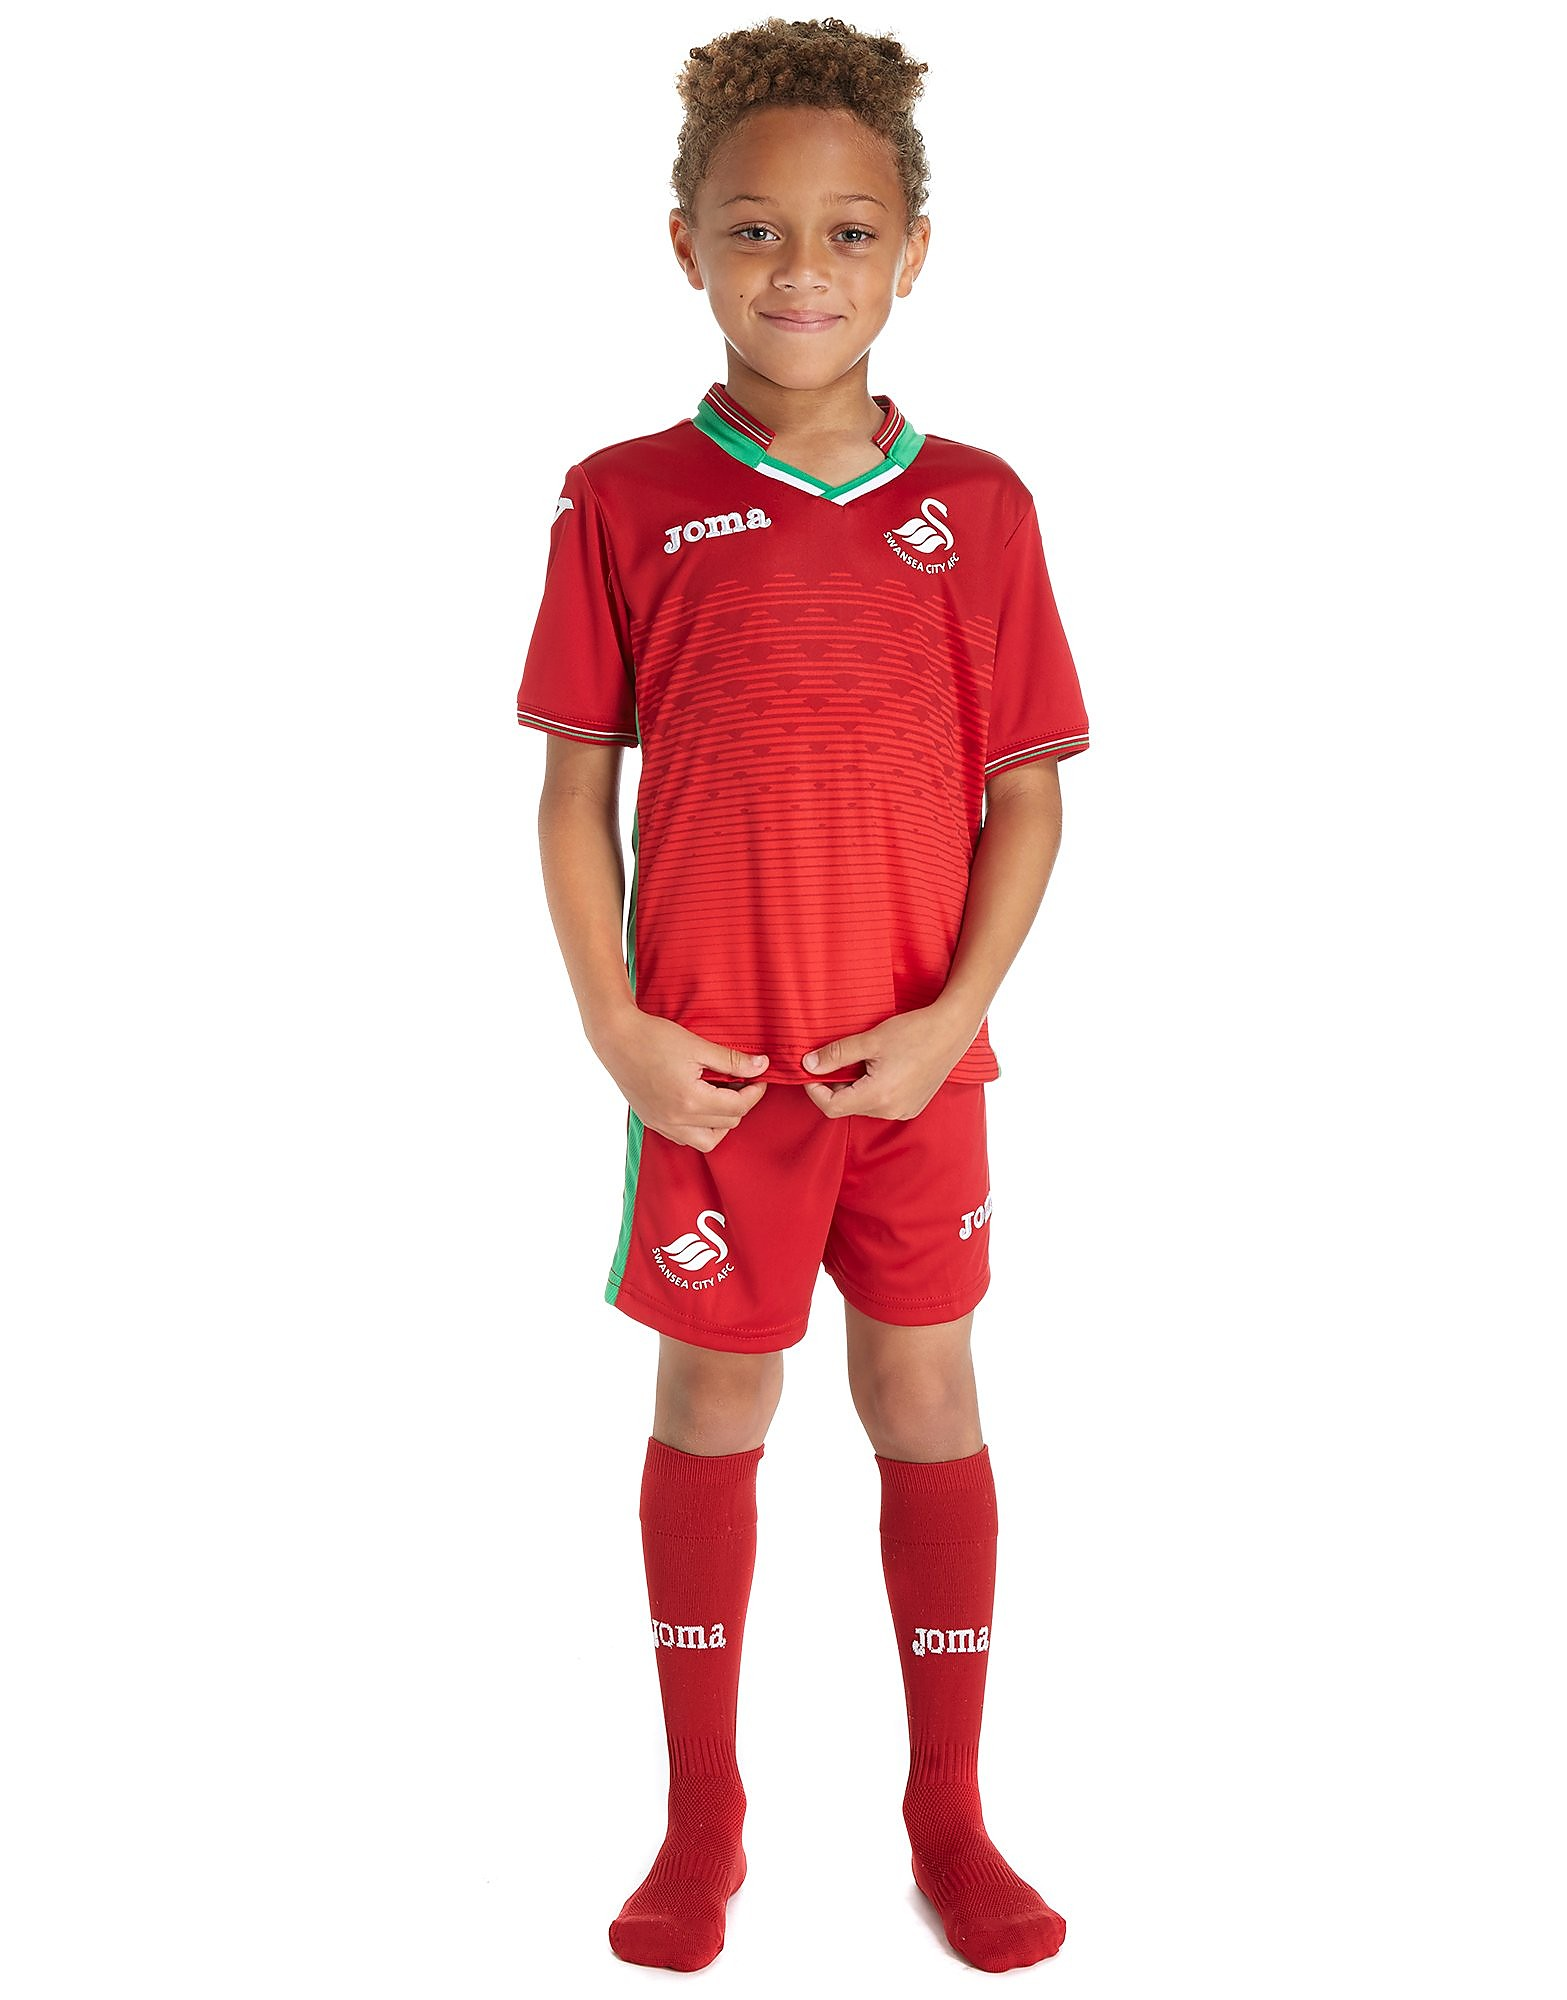 Joma Swansea City FC 2017/18 Away Mini Kit Children